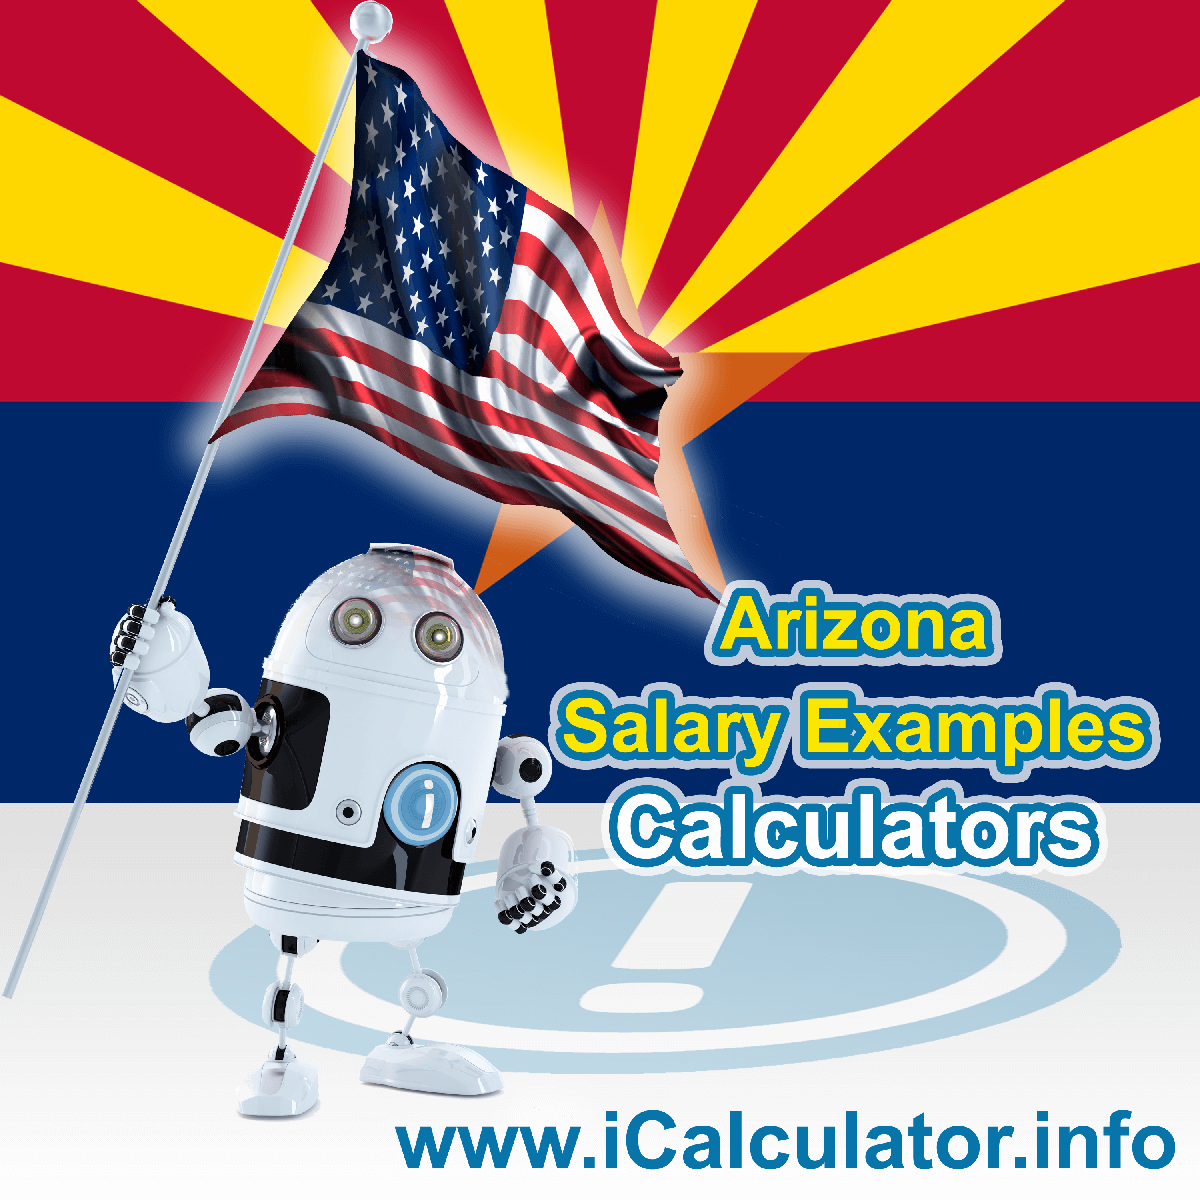 Arizona Salary Example for $170.00 in 2020 | iCalculator | $170.00 salary example for employee and employer paying Arizona State tincome taxes. Detailed salary after tax calculation including Arizona State Tax, Federal State Tax, Medicare Deductions, Social Security, Capital Gains and other income tax and salary deductions complete with supporting Arizona state tax tables